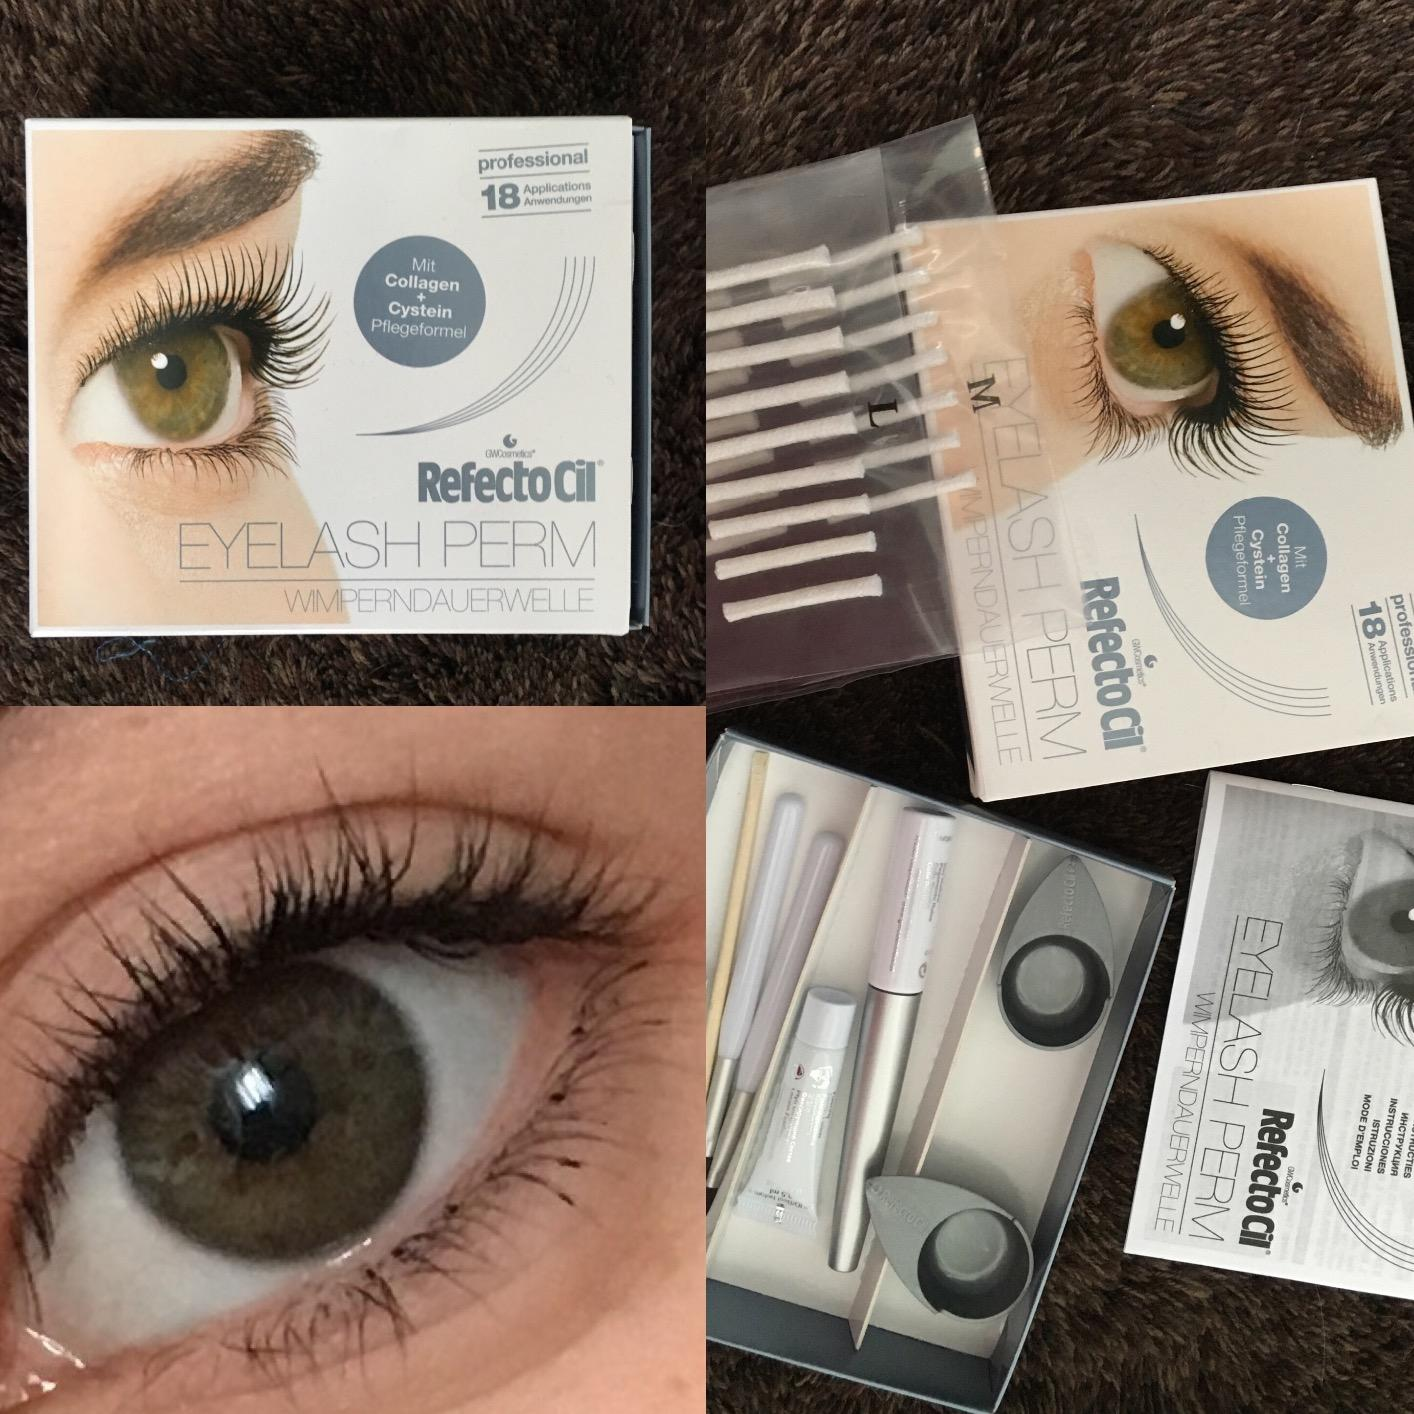 RefectoCil Starterset Wimperndauerwelle - Wimpernwelle Sets